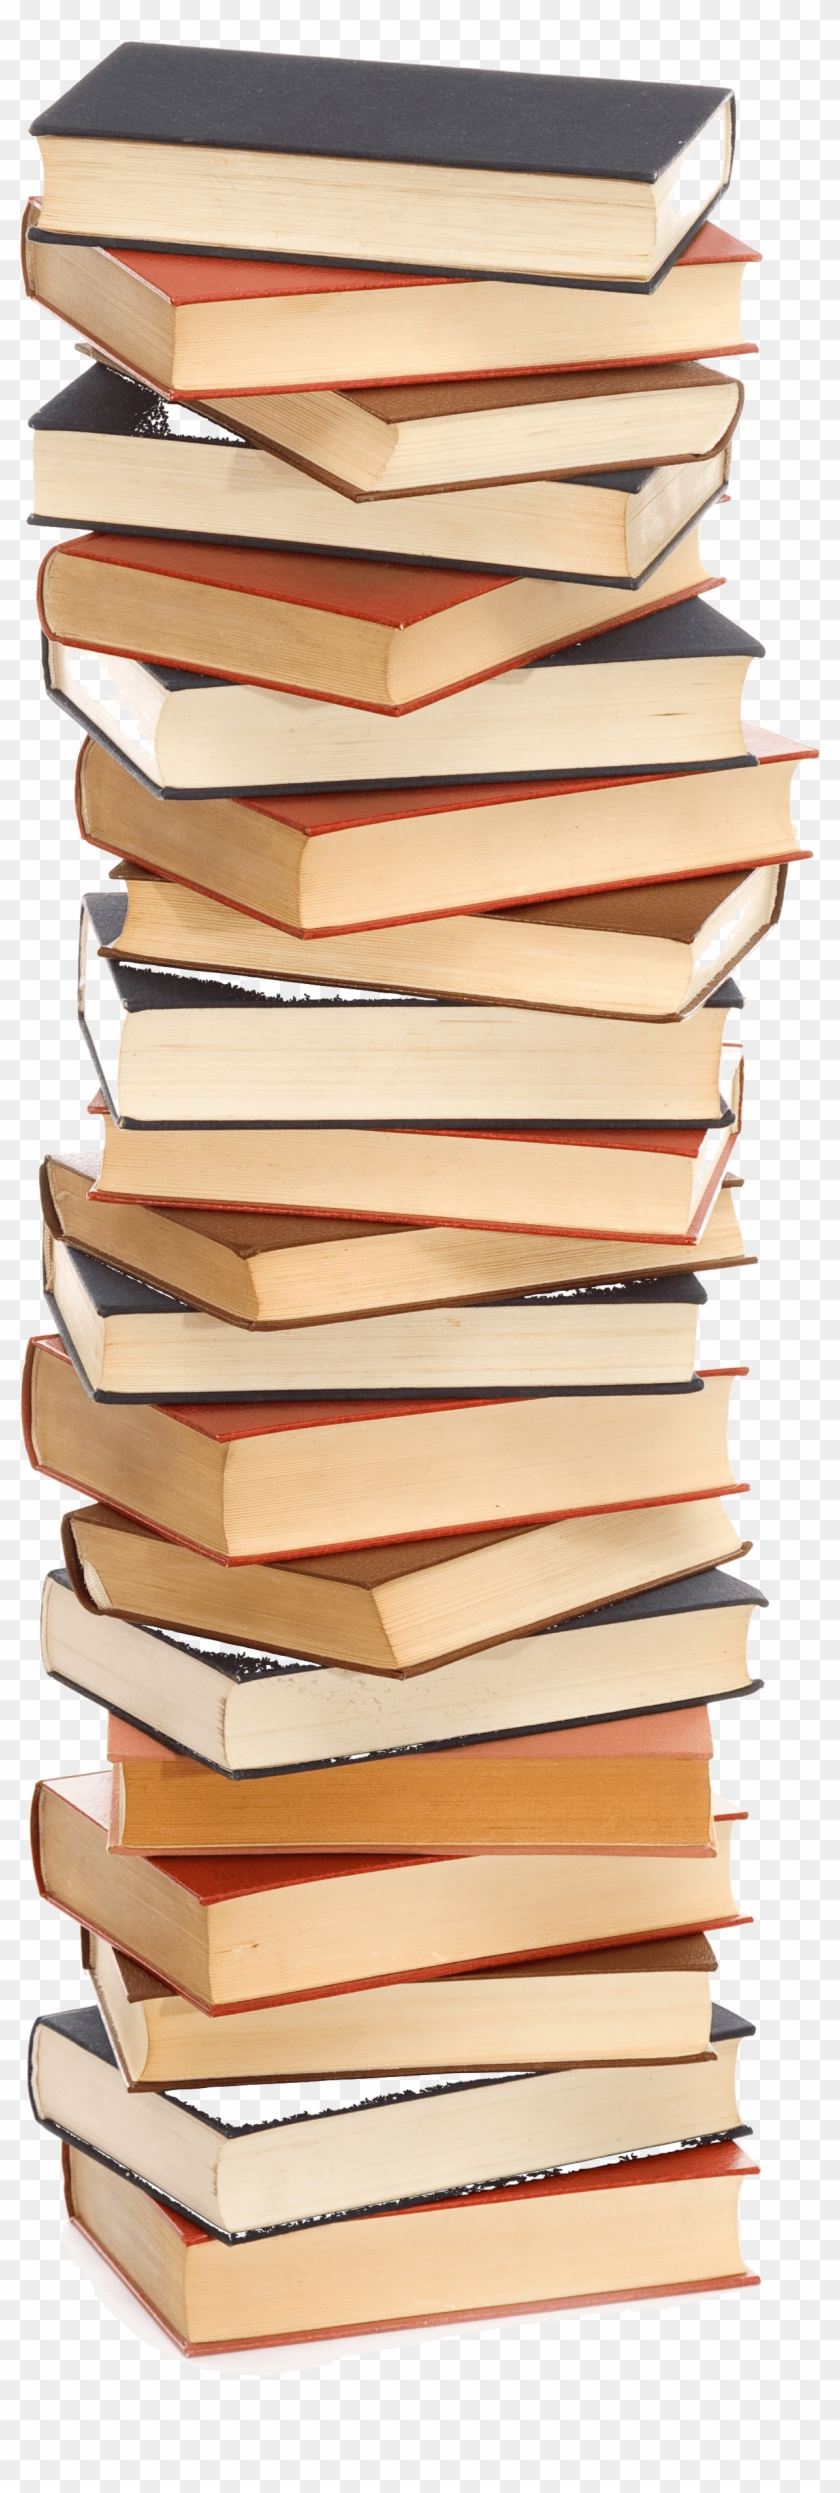 Tall Stack Of Books Transparent - Clipart Stack Of Books Transparent - Png Download #3314095